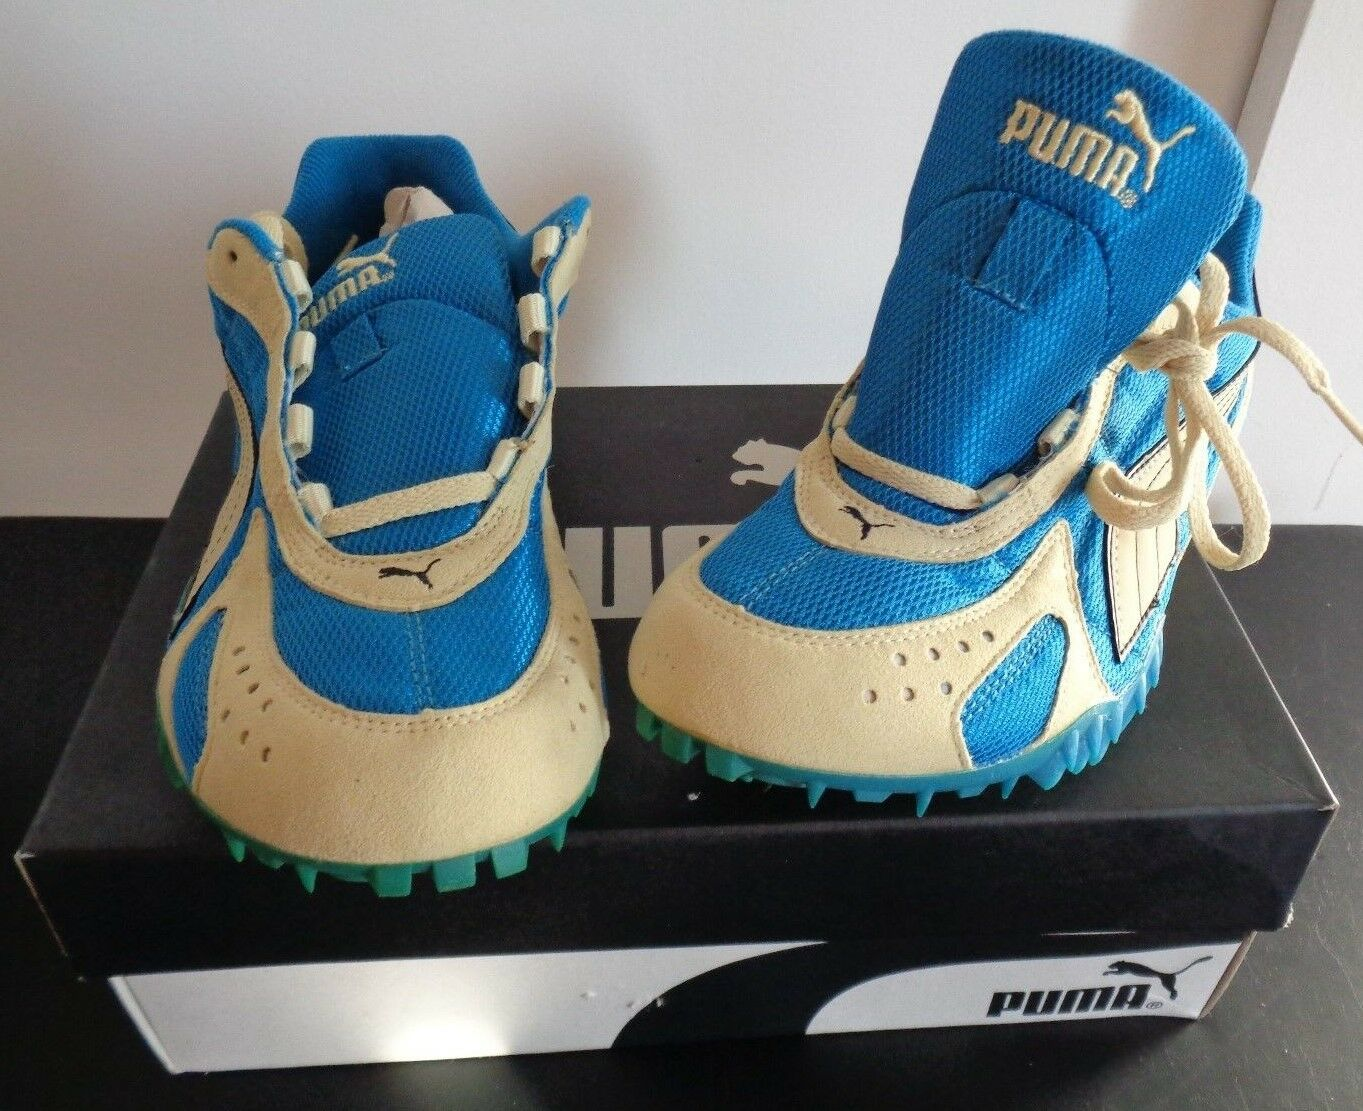 PUMA Men's COMPLETE SPRINT SPIKE Track Shoes Size US 8 Blue Gold NEW IN BOX